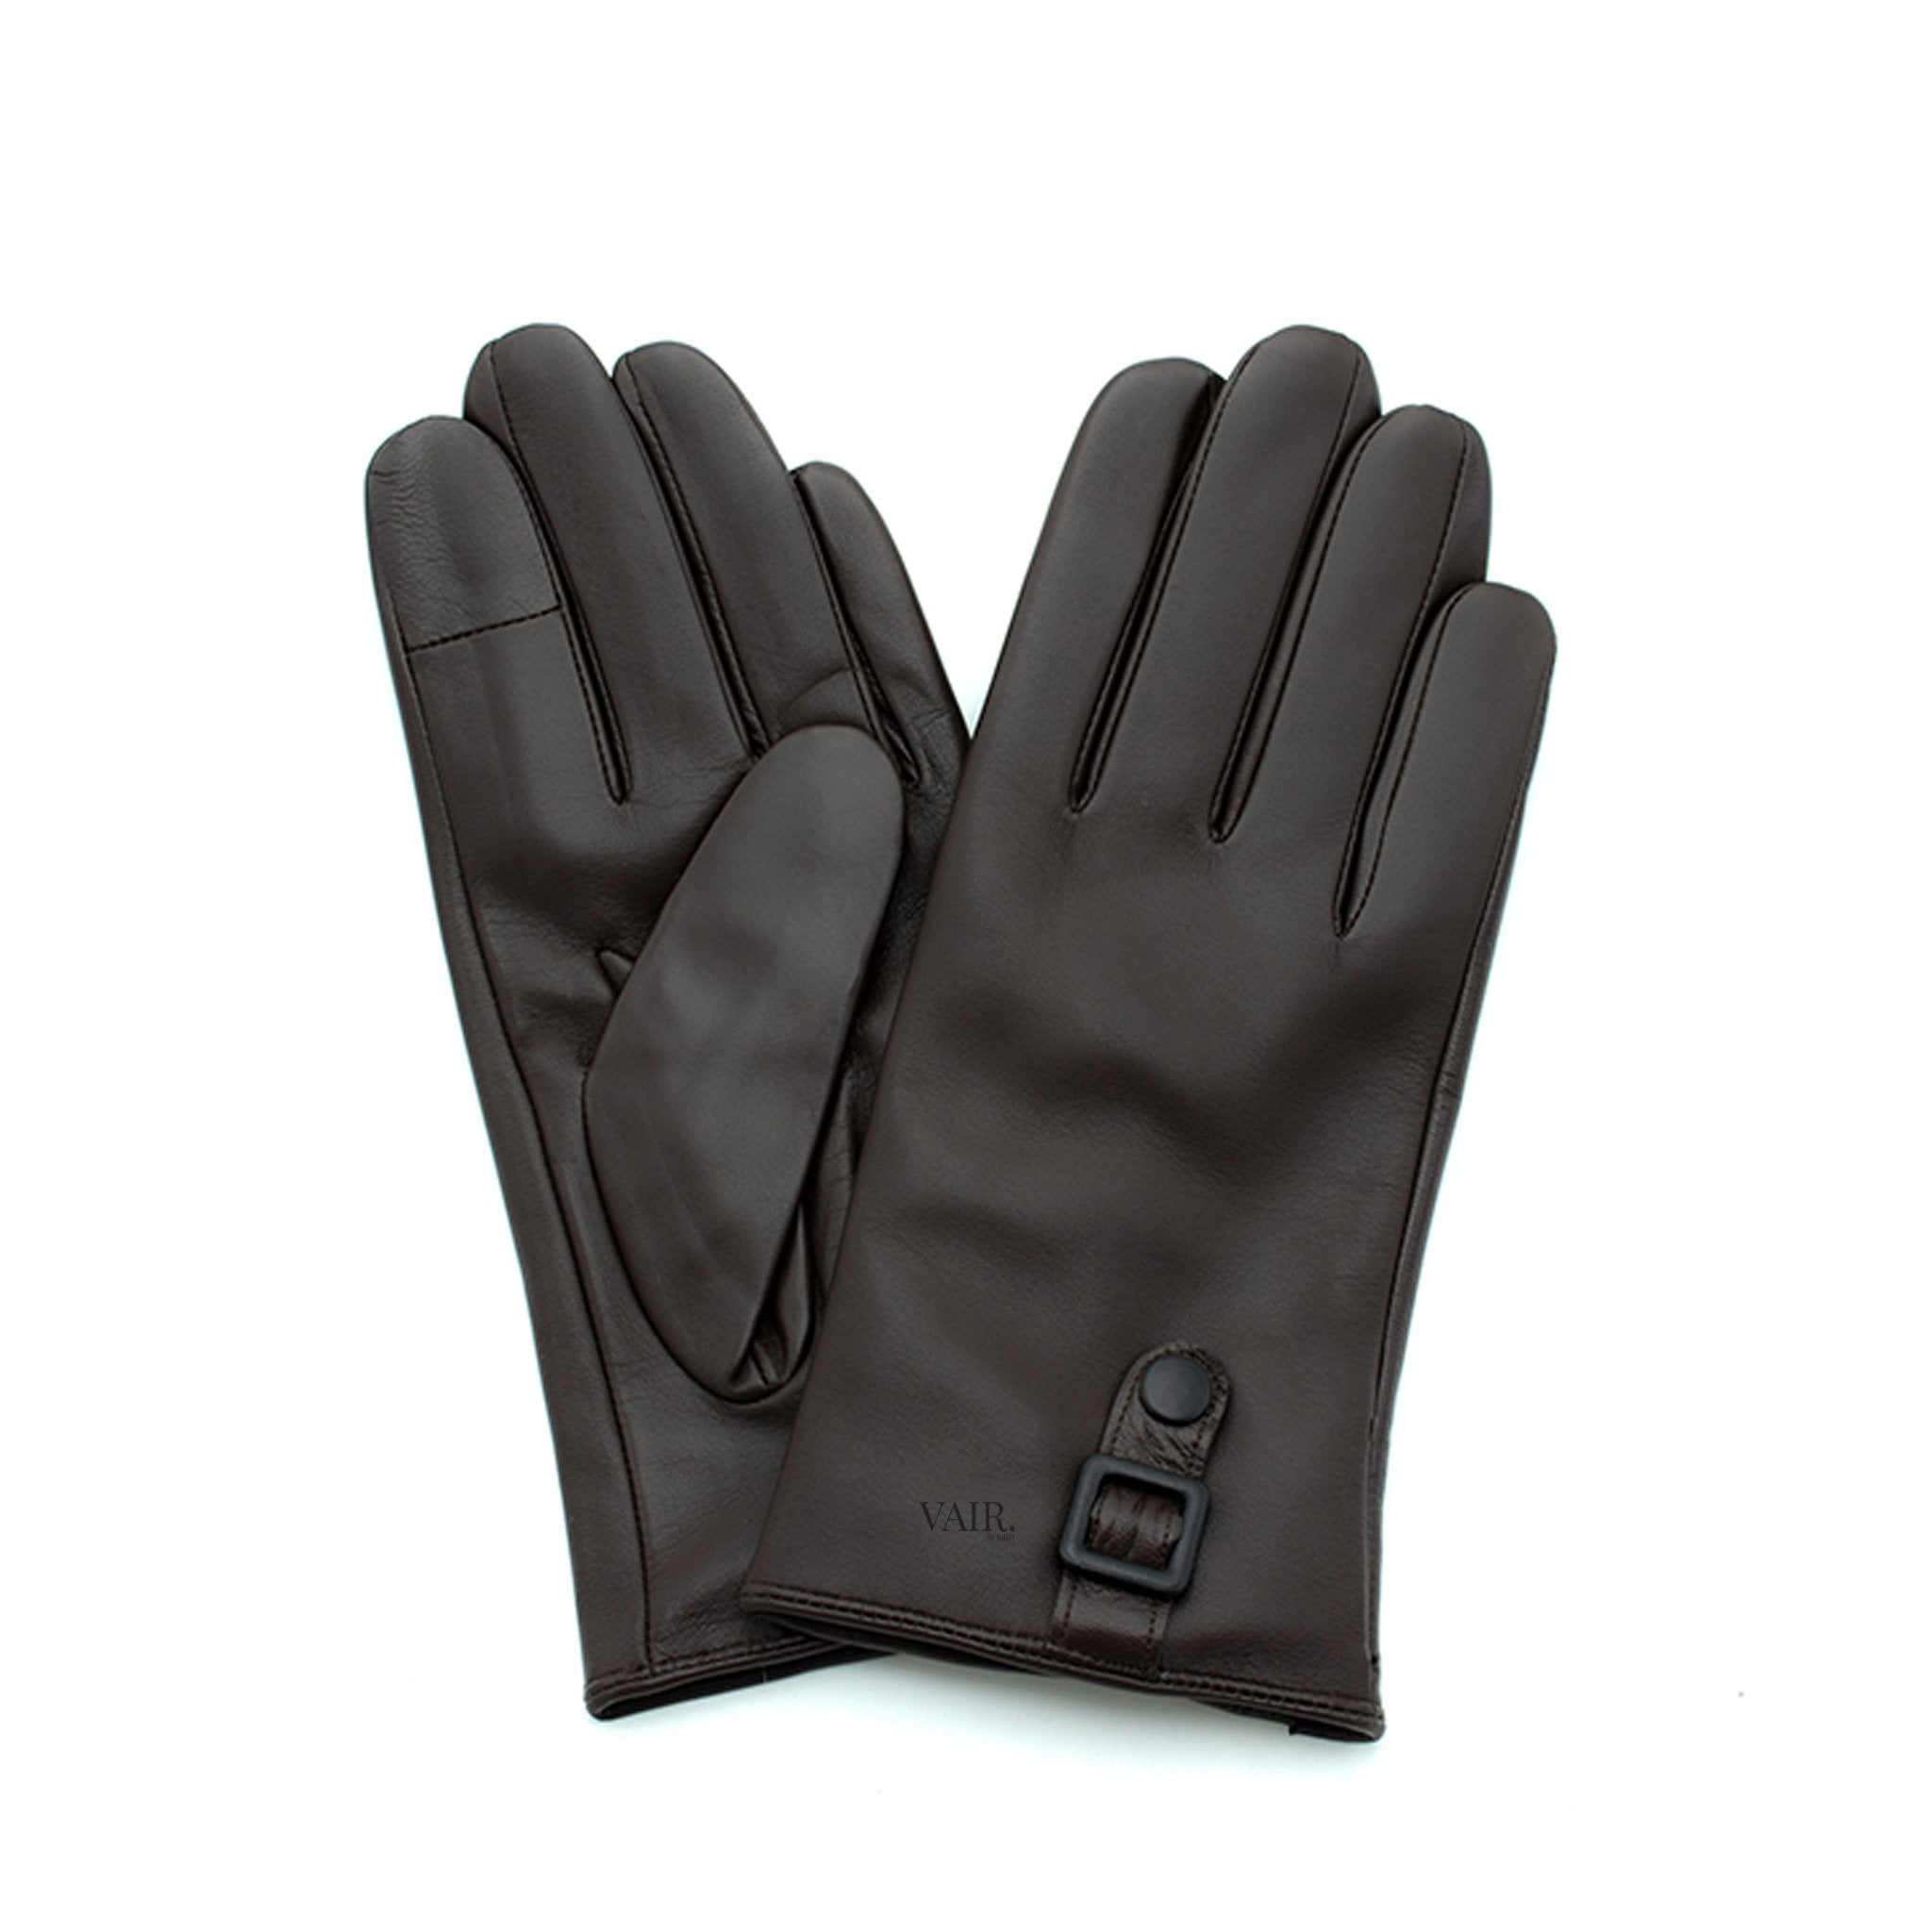 brown signature mens leather gloves with cashmere lining by juliette vair